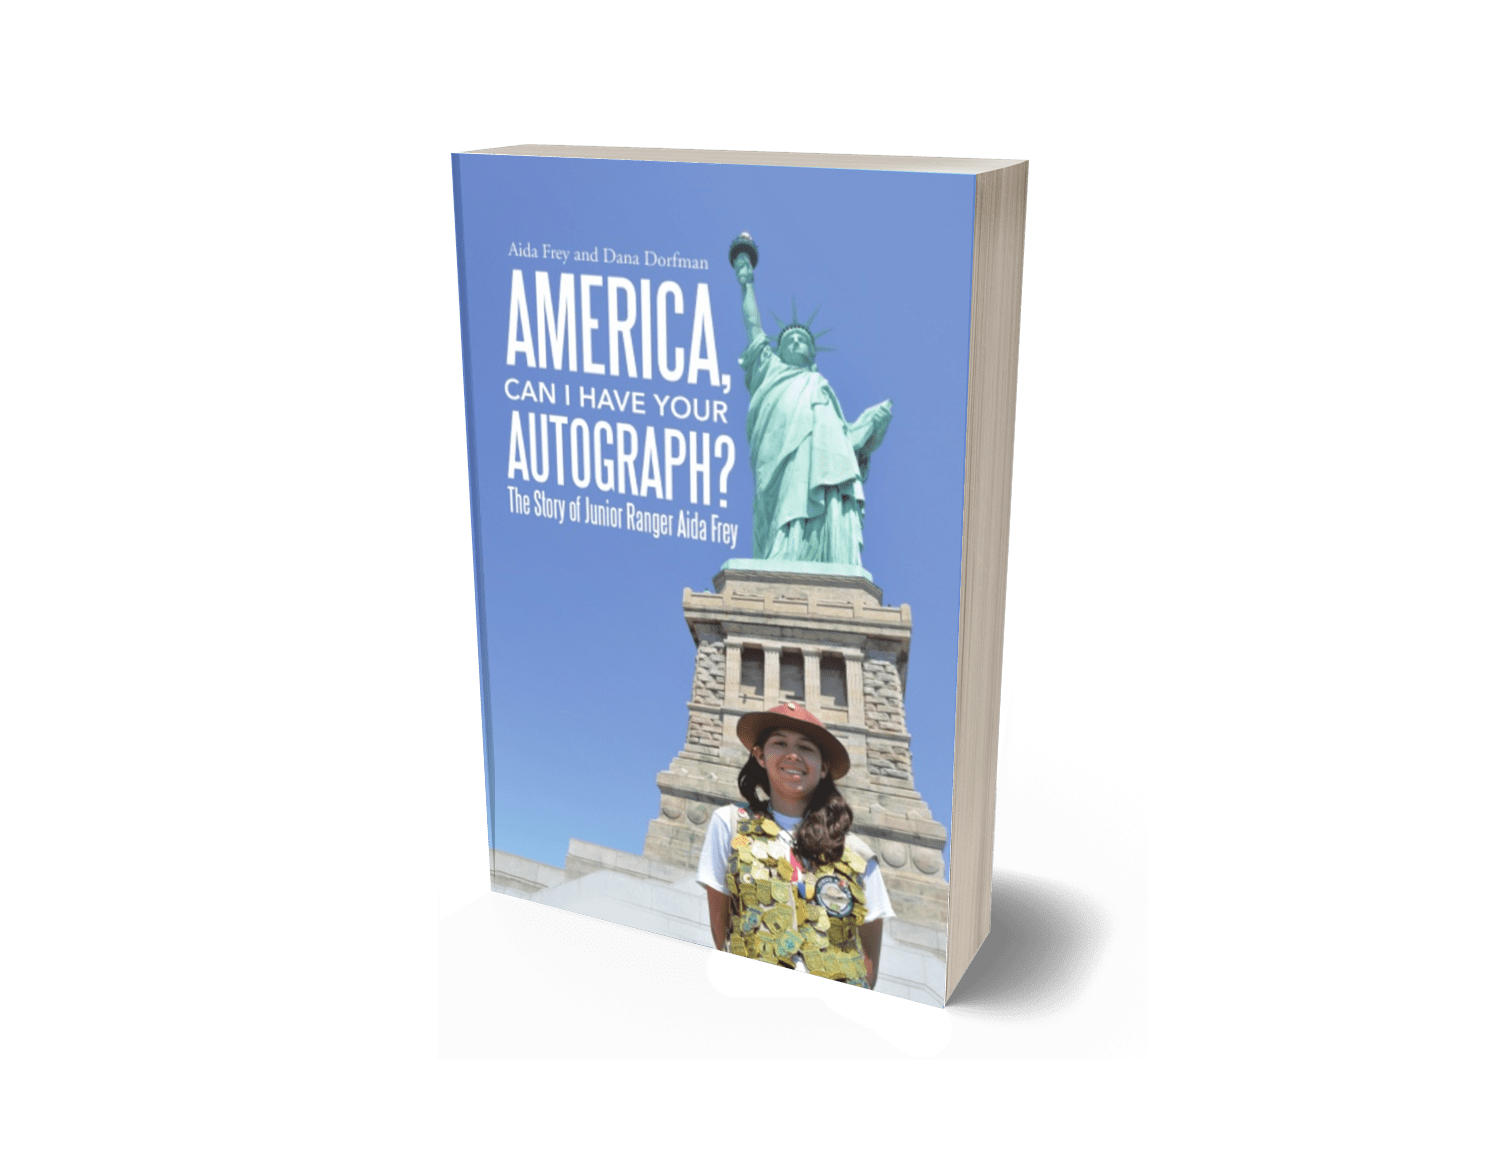 America, Can I Have Your Autograph?: The Story of Junior Ranger Aida Frey